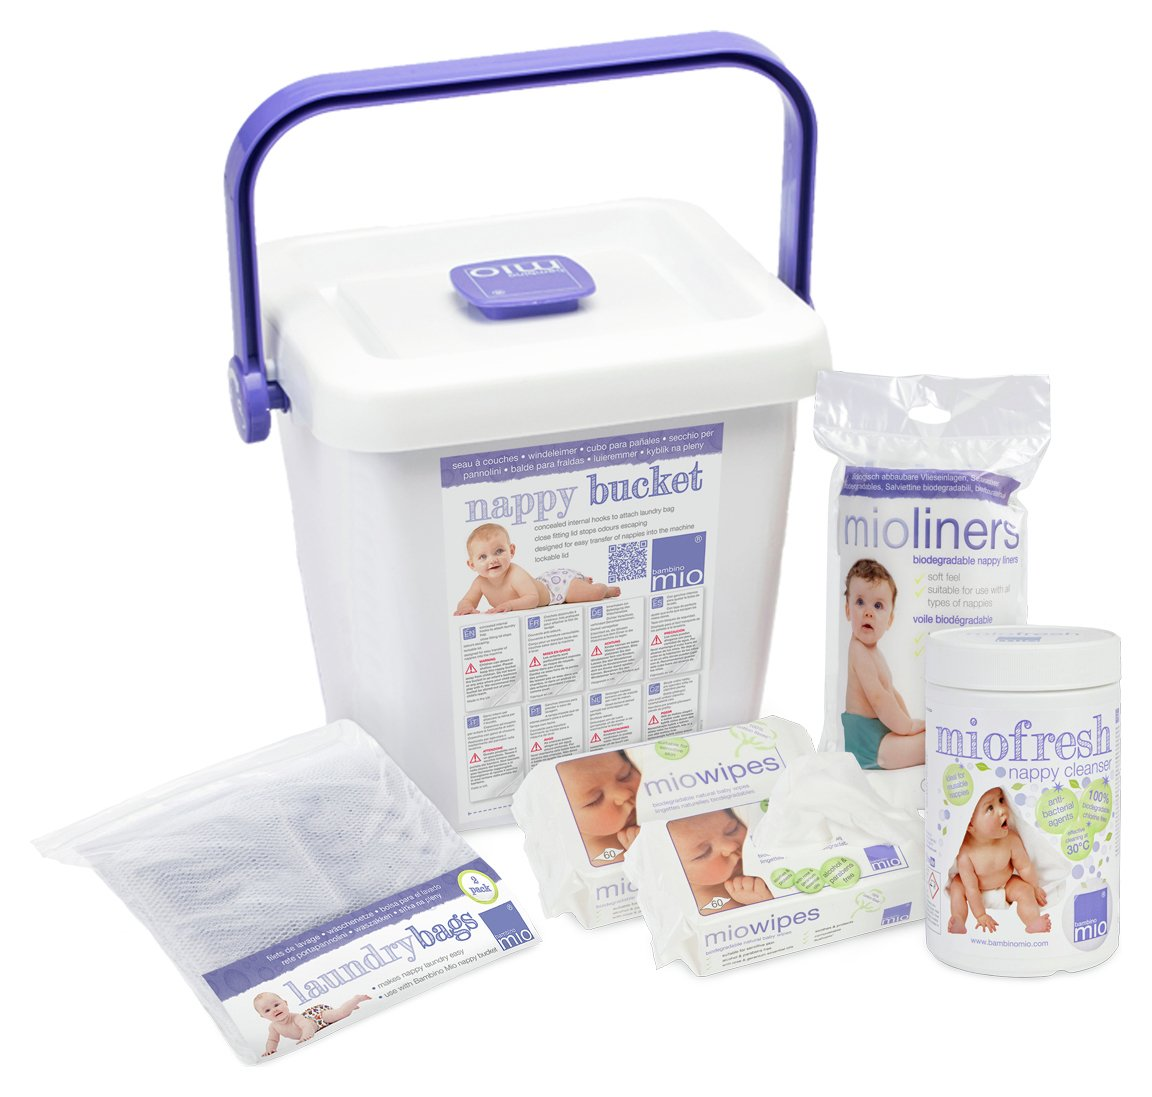 Image of Bambino Mio Reusable Nappy Accessory Pack.